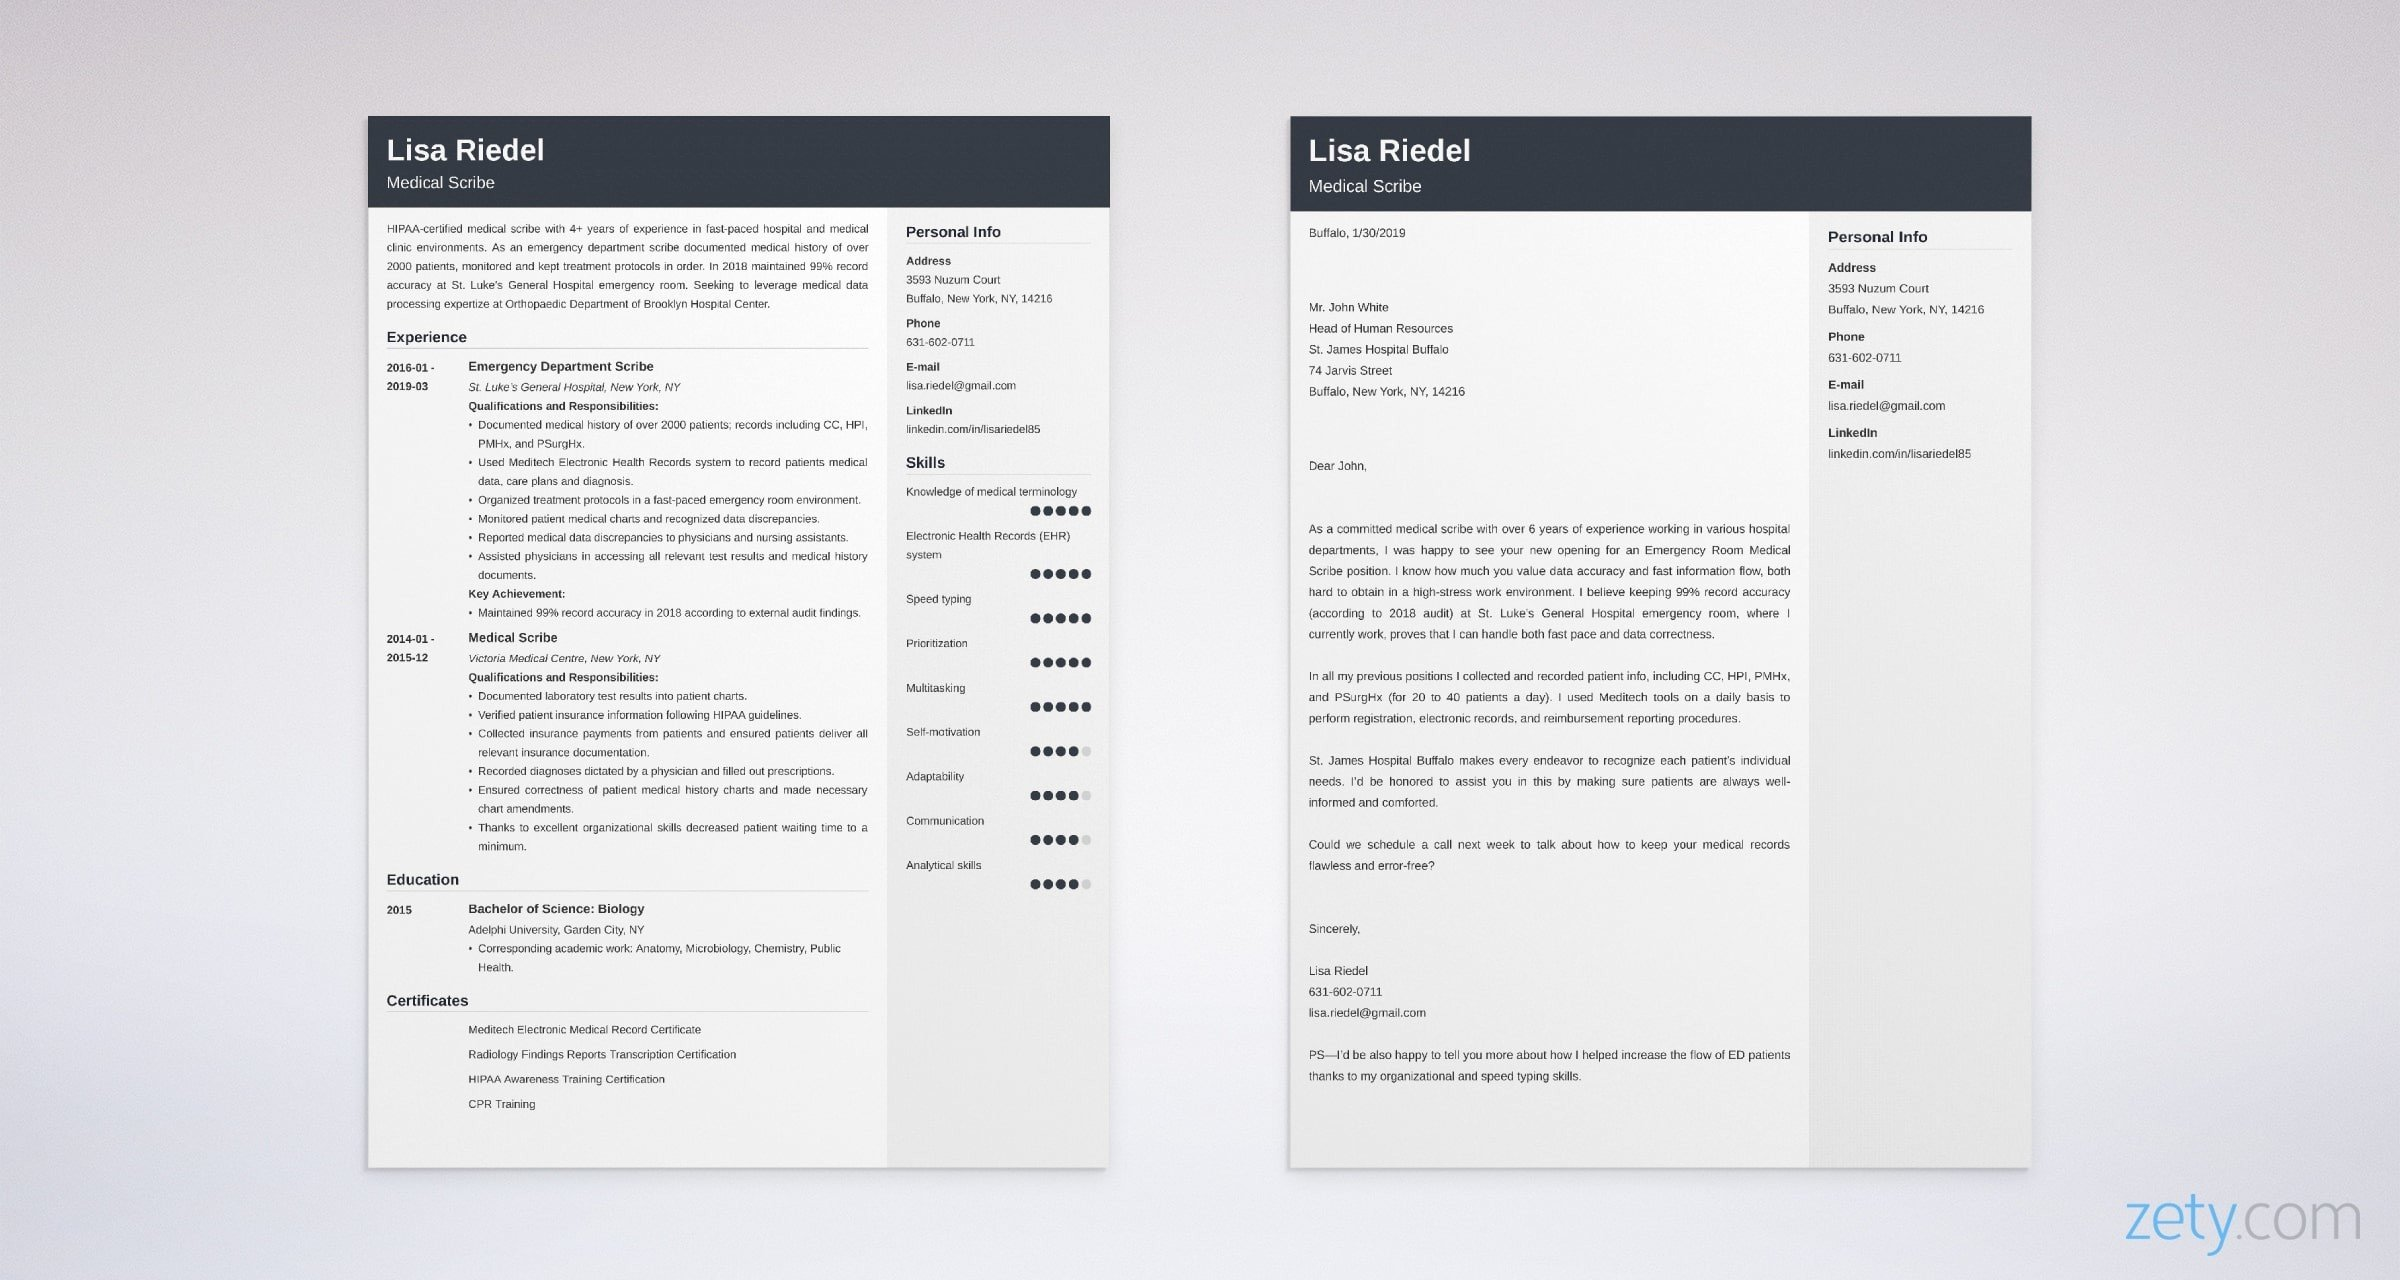 Medical Scribe Cover Letter Samples Proper Format